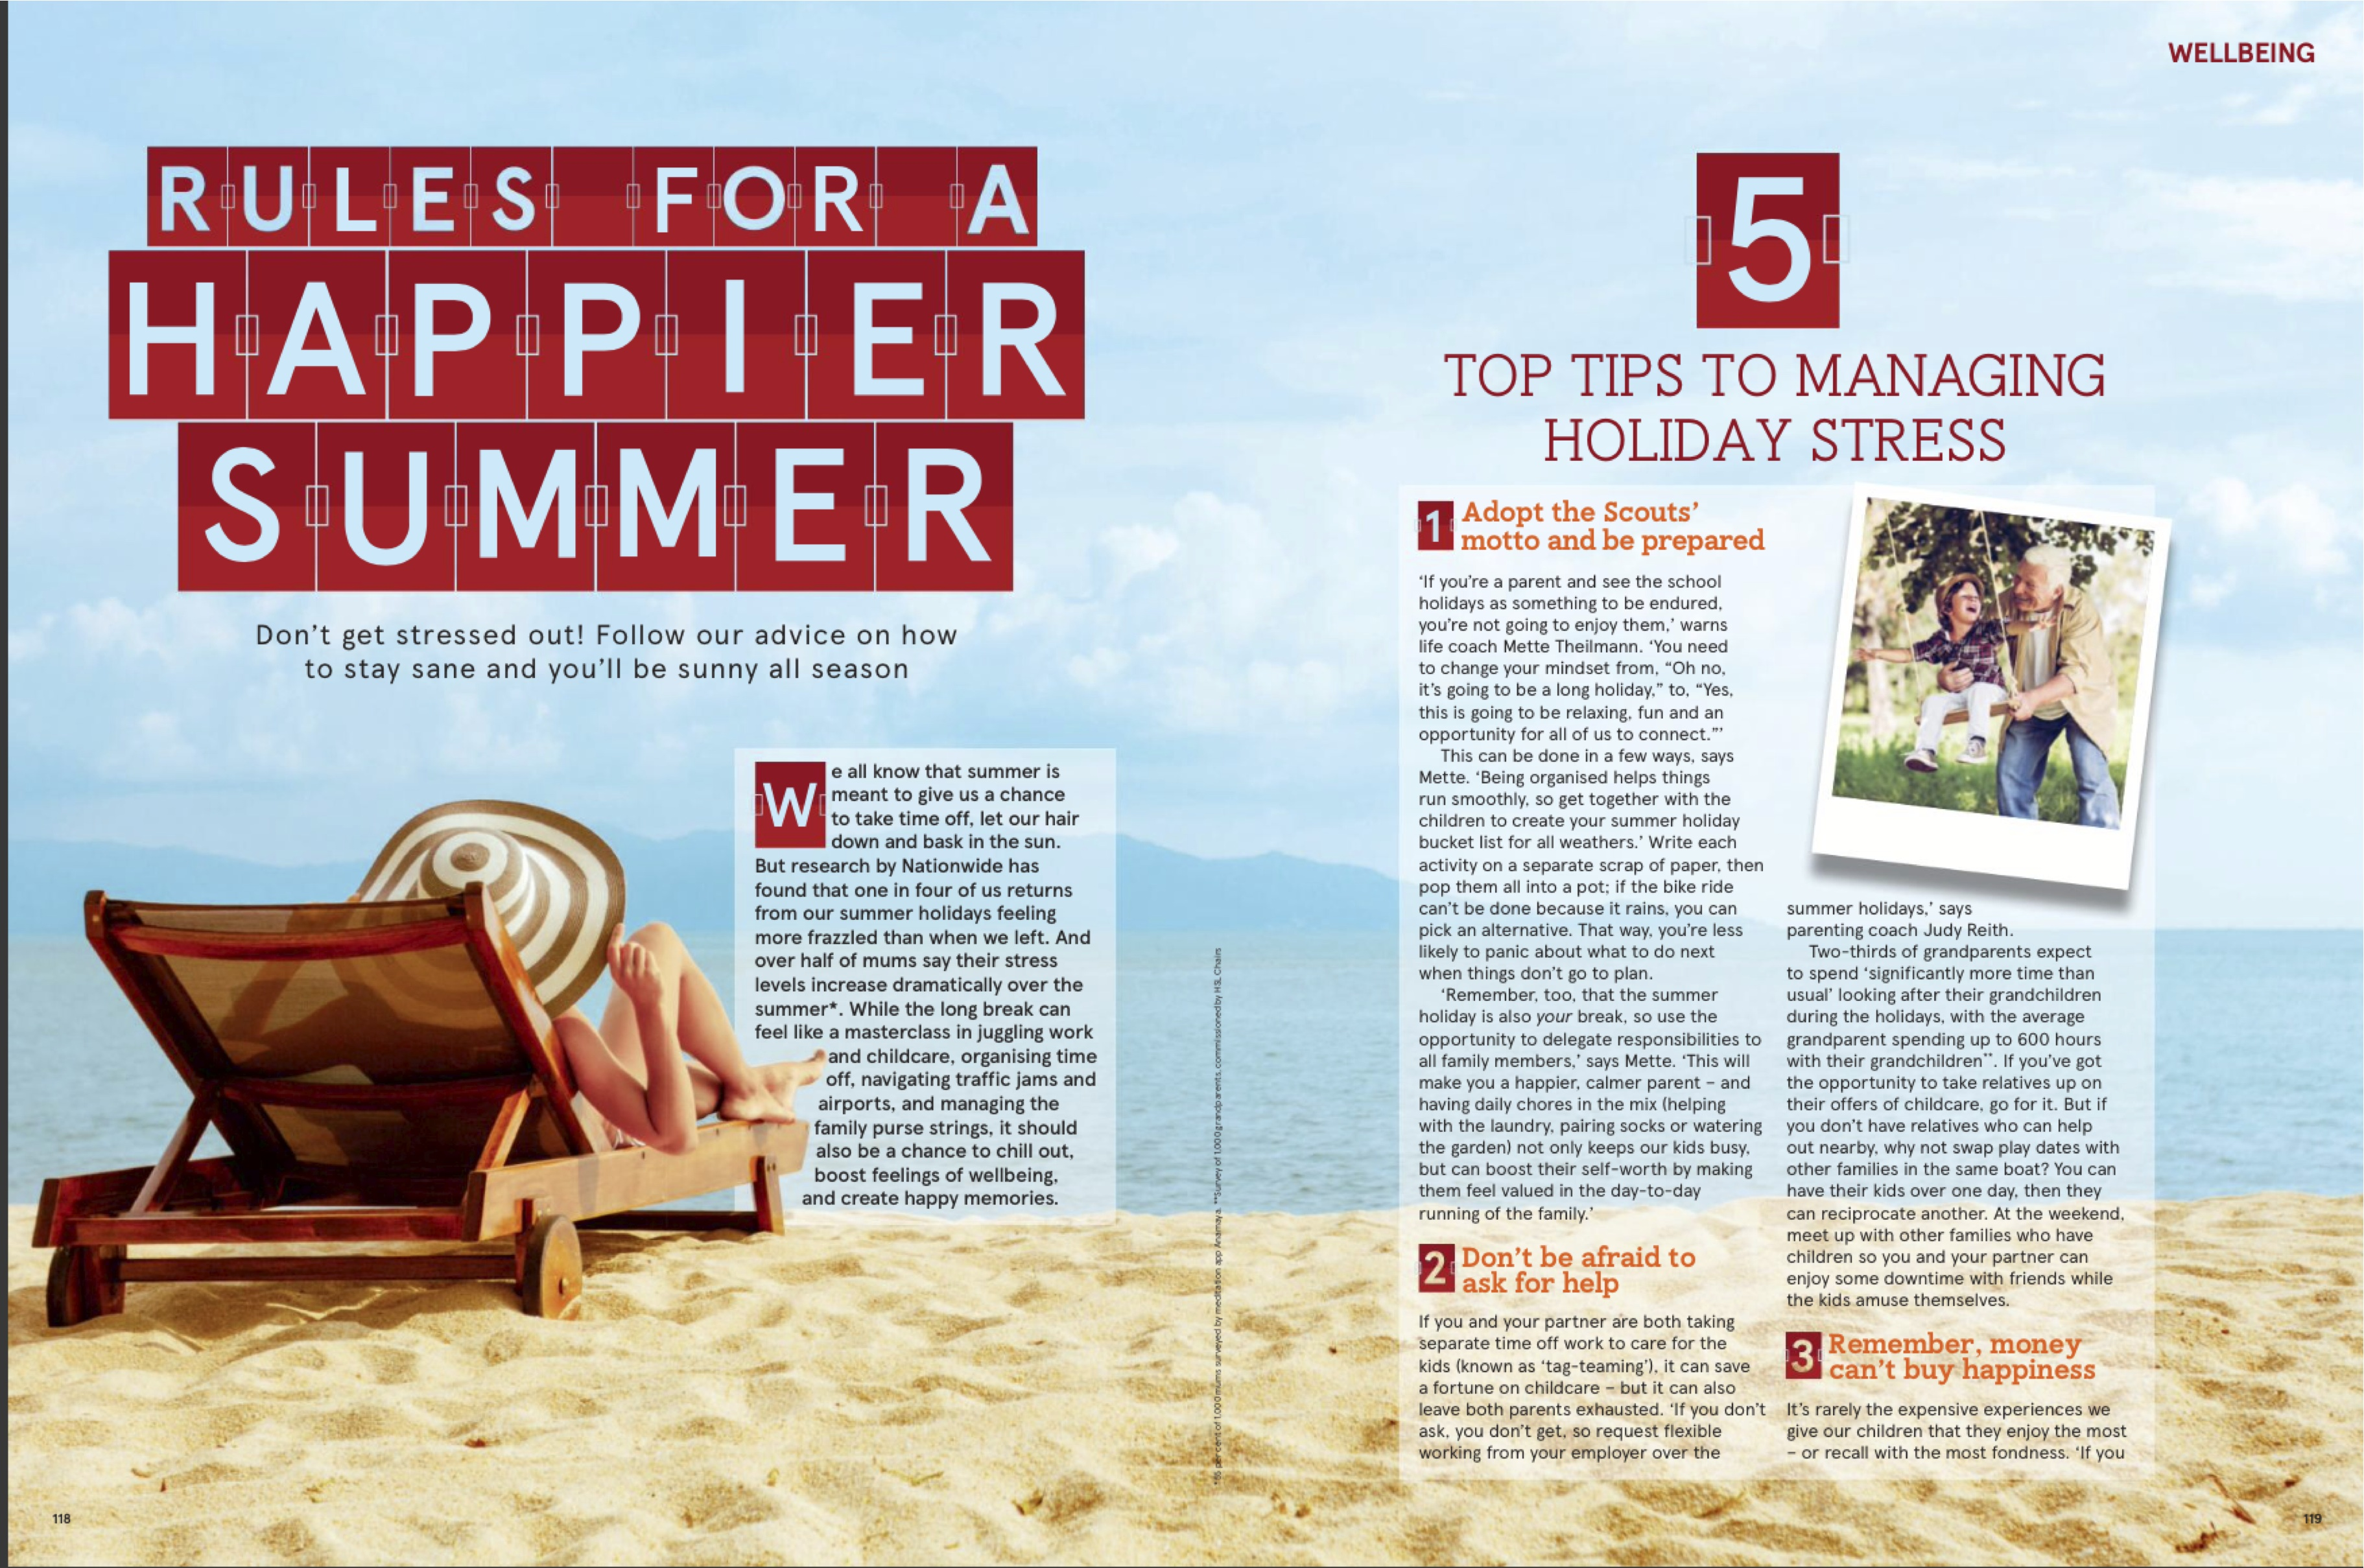 Rules for happier summer